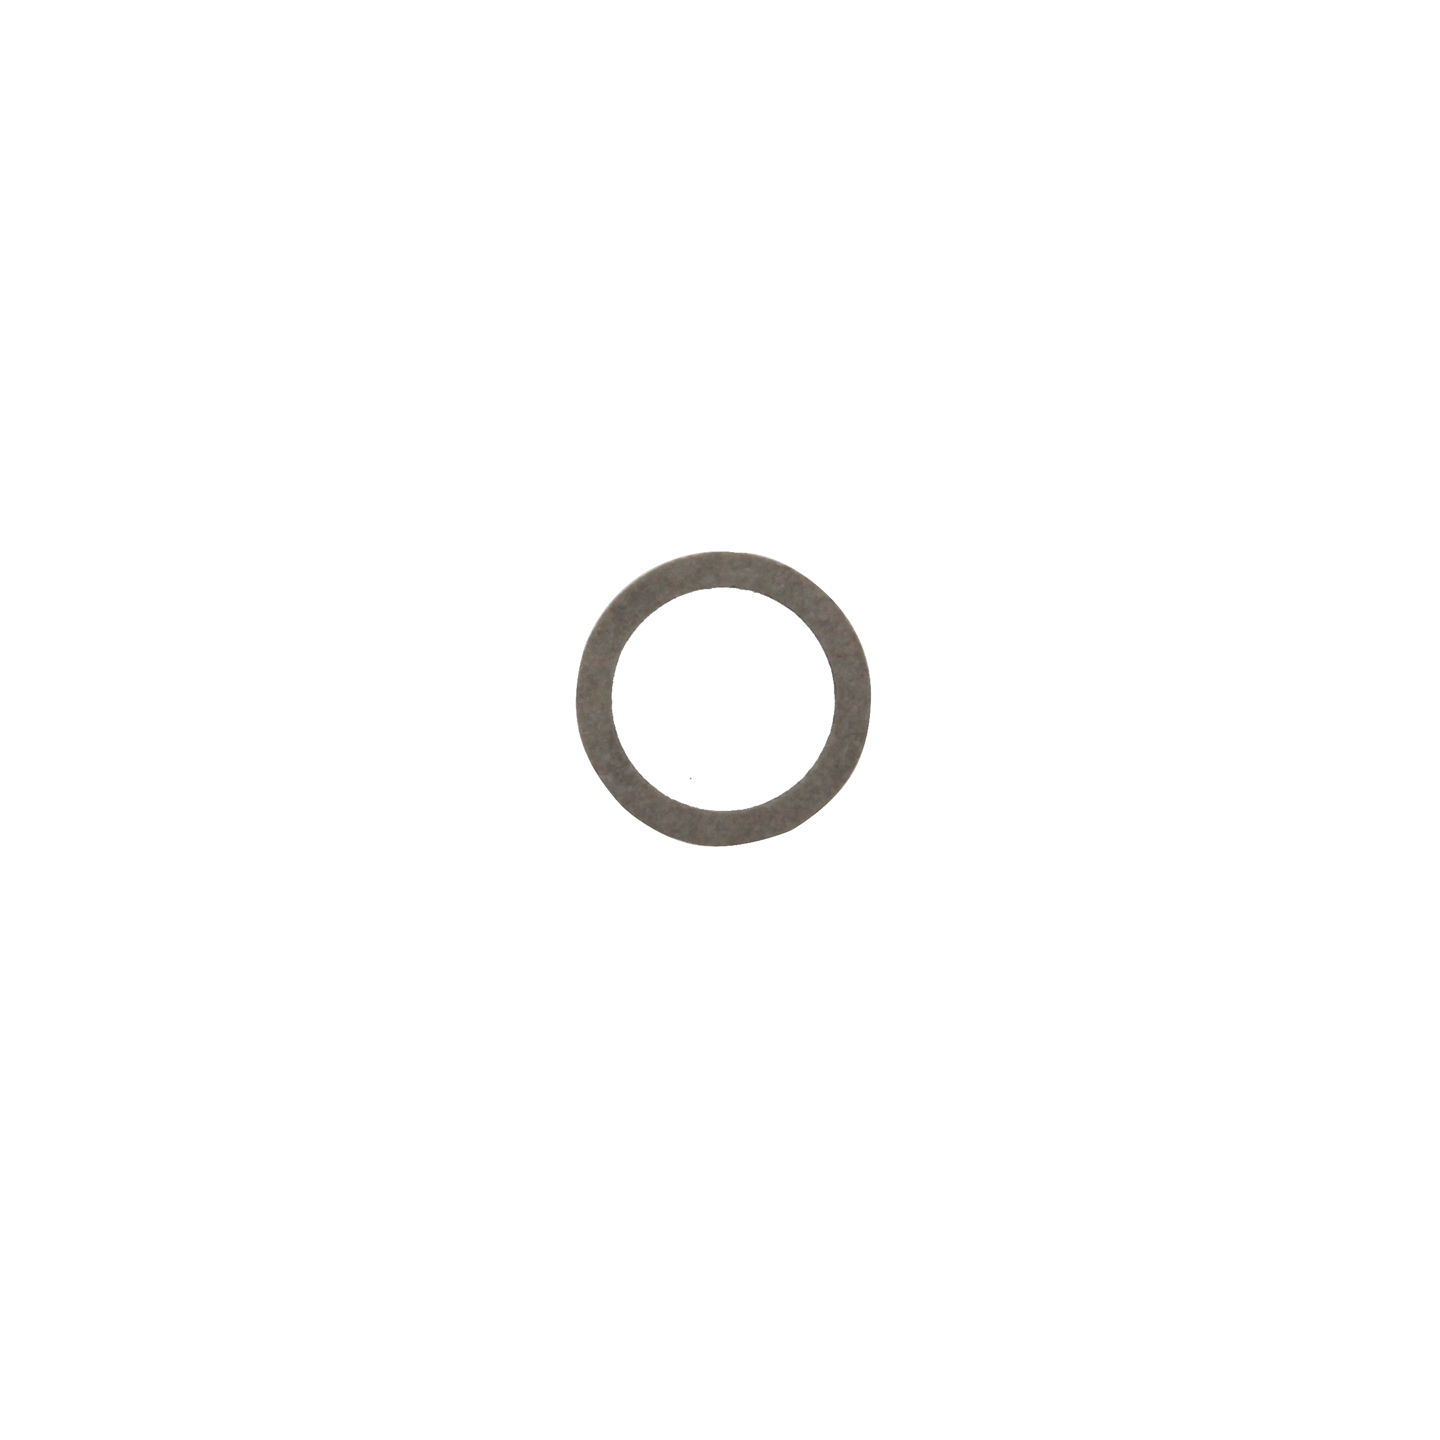 Replacement Head Nut Gasket for ST Series Housing PENTEK-143339